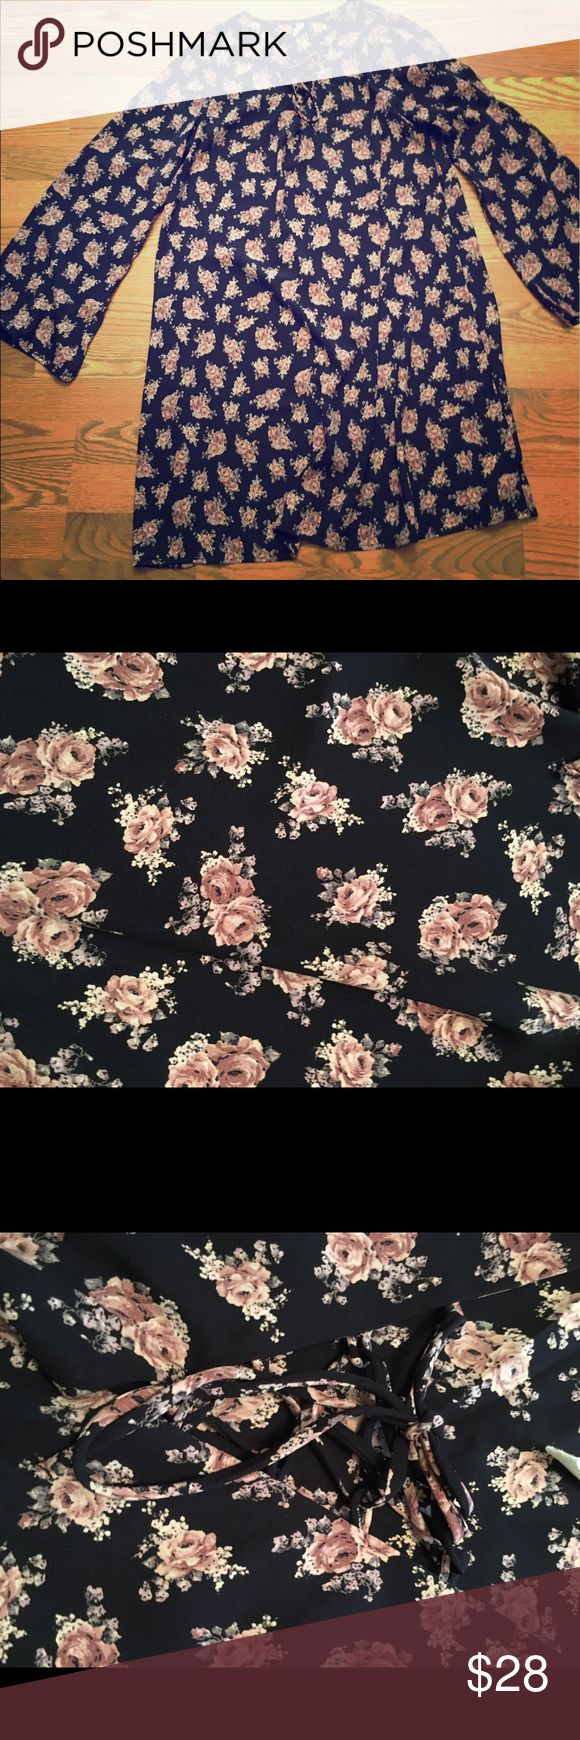 Pink Blush Floral Maternity dress Size small. Only worn once. Navy with pink/mauve floral print. Pink Blush Dresses